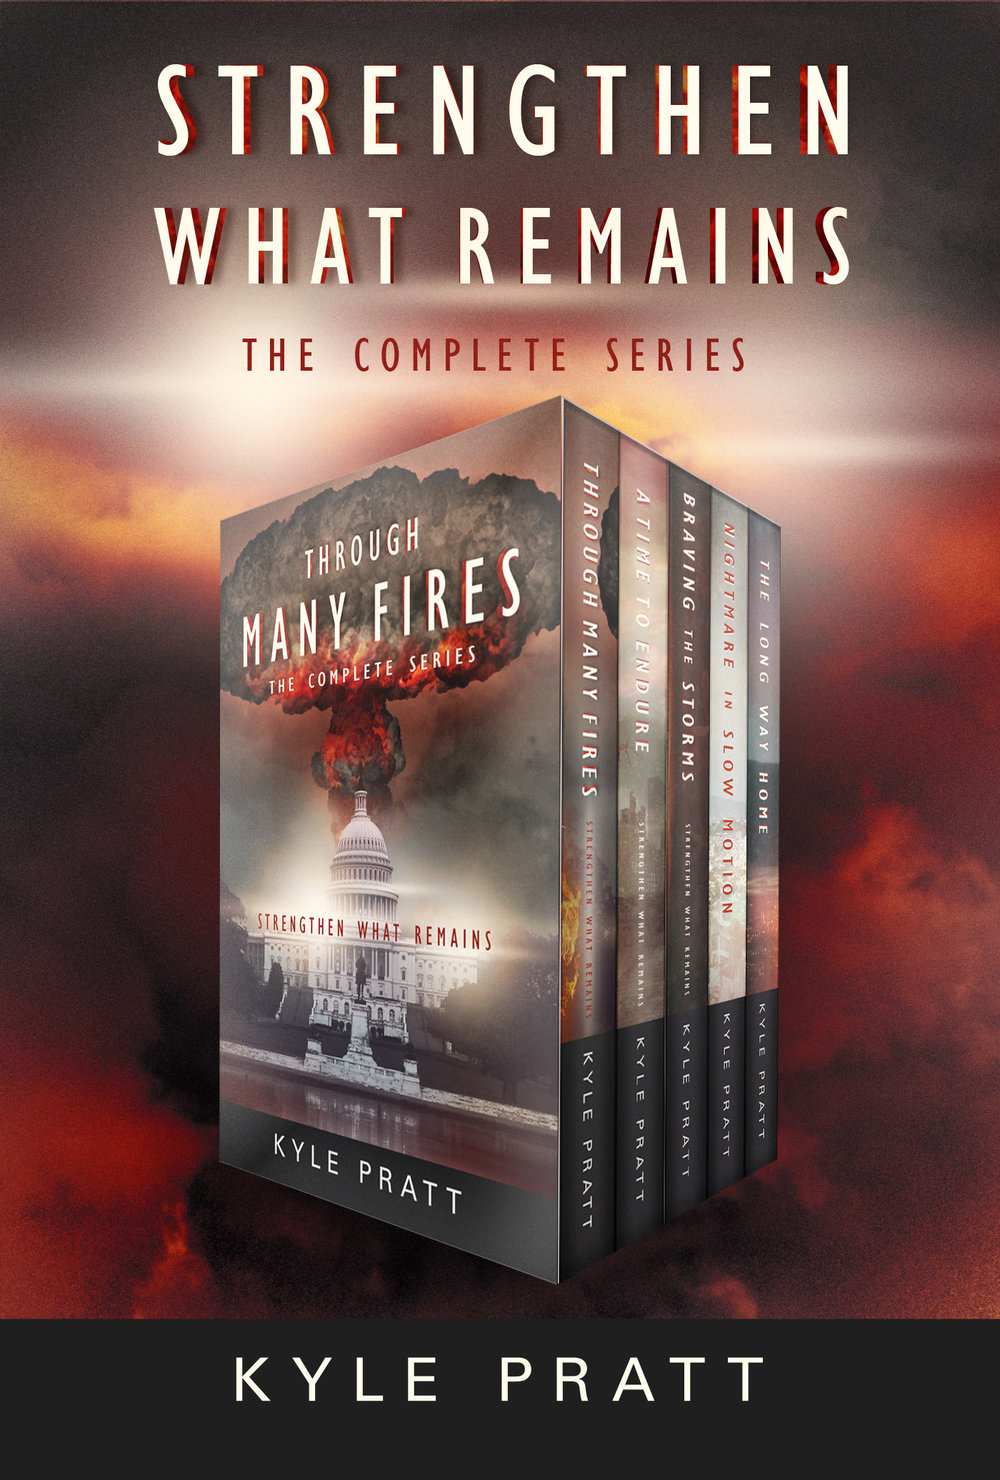 The Strengthen What Remains Boxset That's right, the entire Strengthen What Remains series in one ebook box set--nearly 250,000 words of post-apocalyptic action-adventure.  This box set includes Through Many Fires , A Time to Endure, Braving the Storms, Nightmare in Slow Motion, and The Long Way Home.